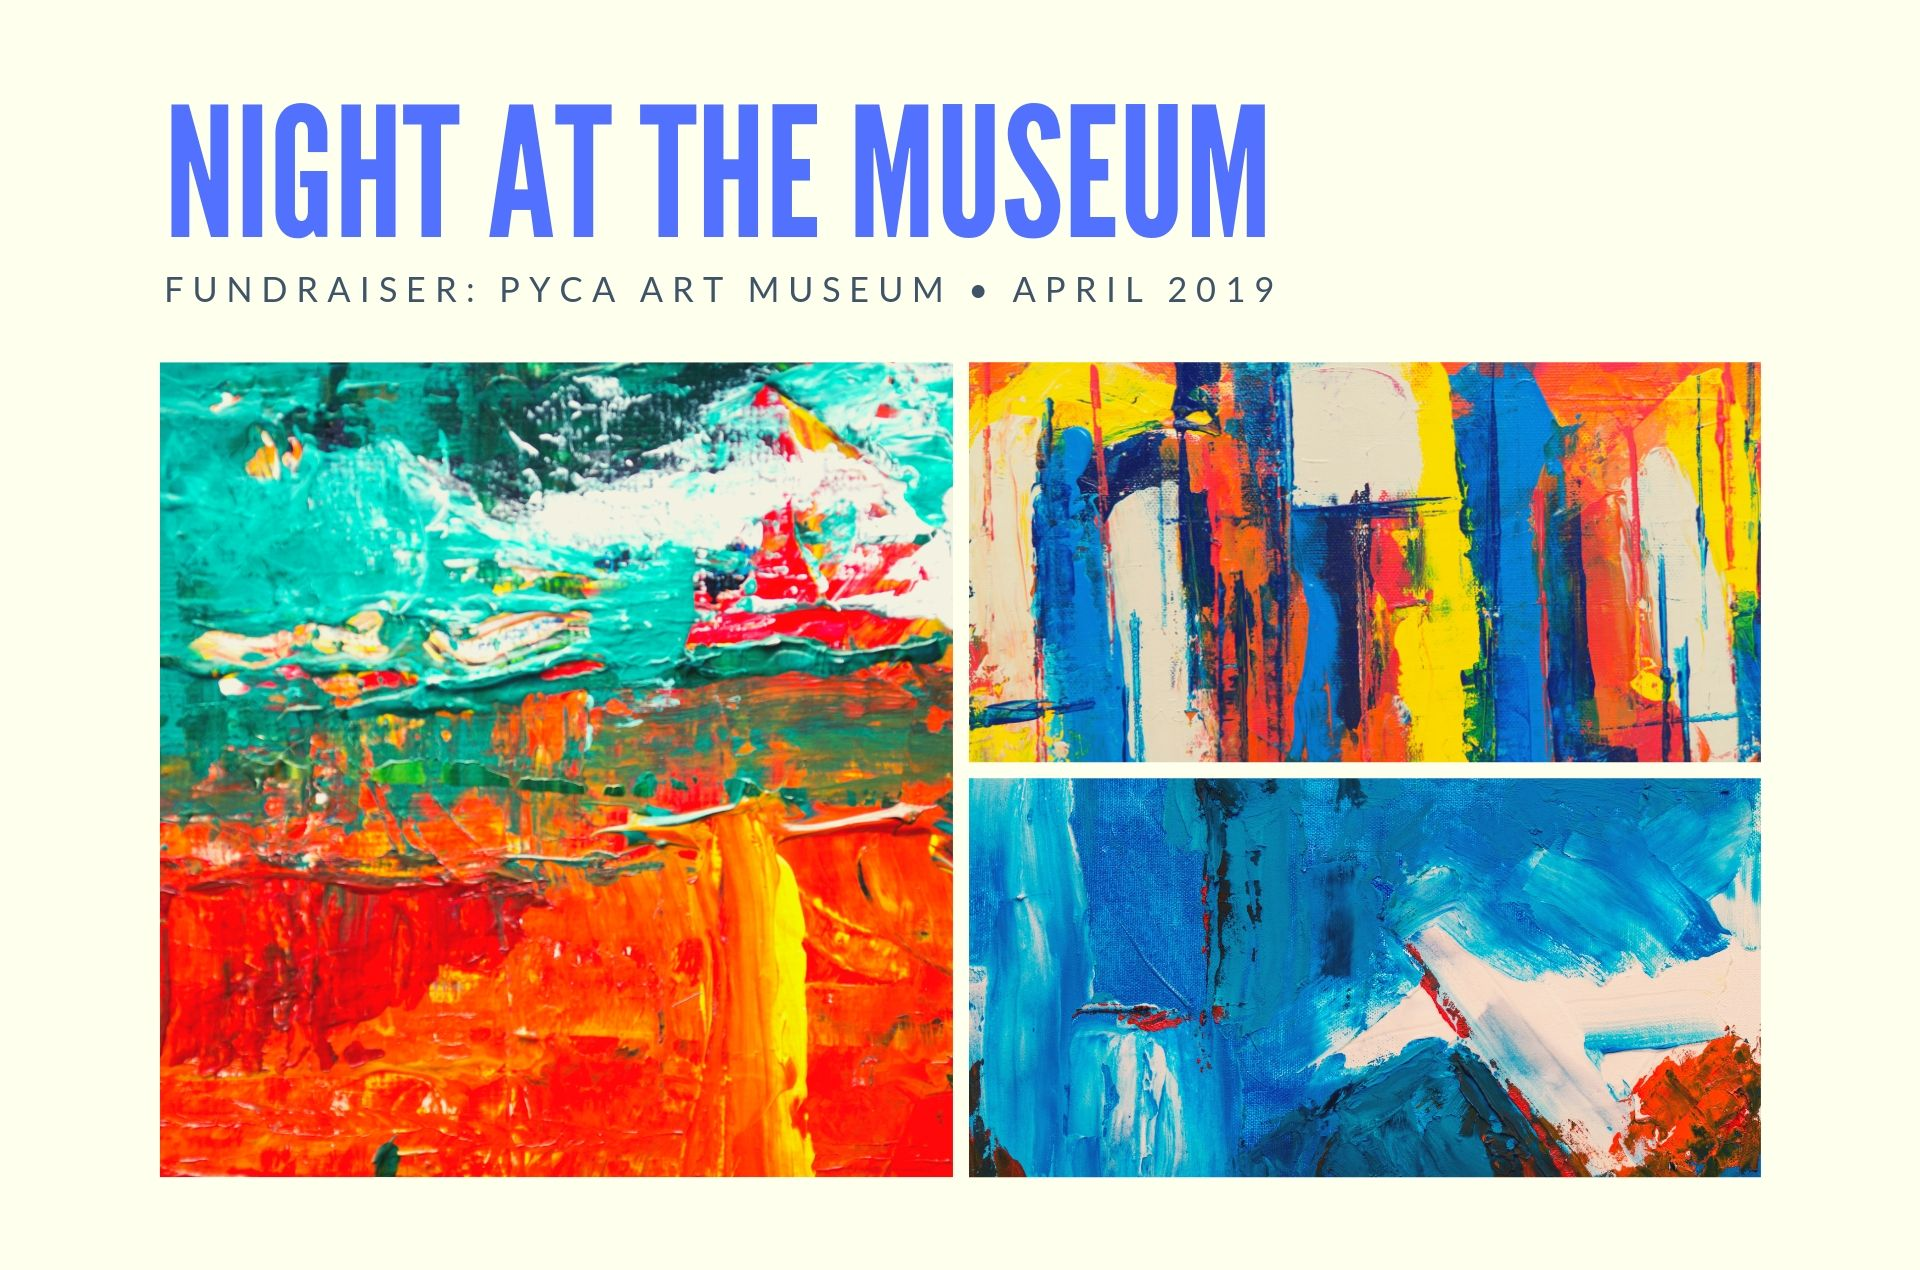 Night at the Museum Fundraiser